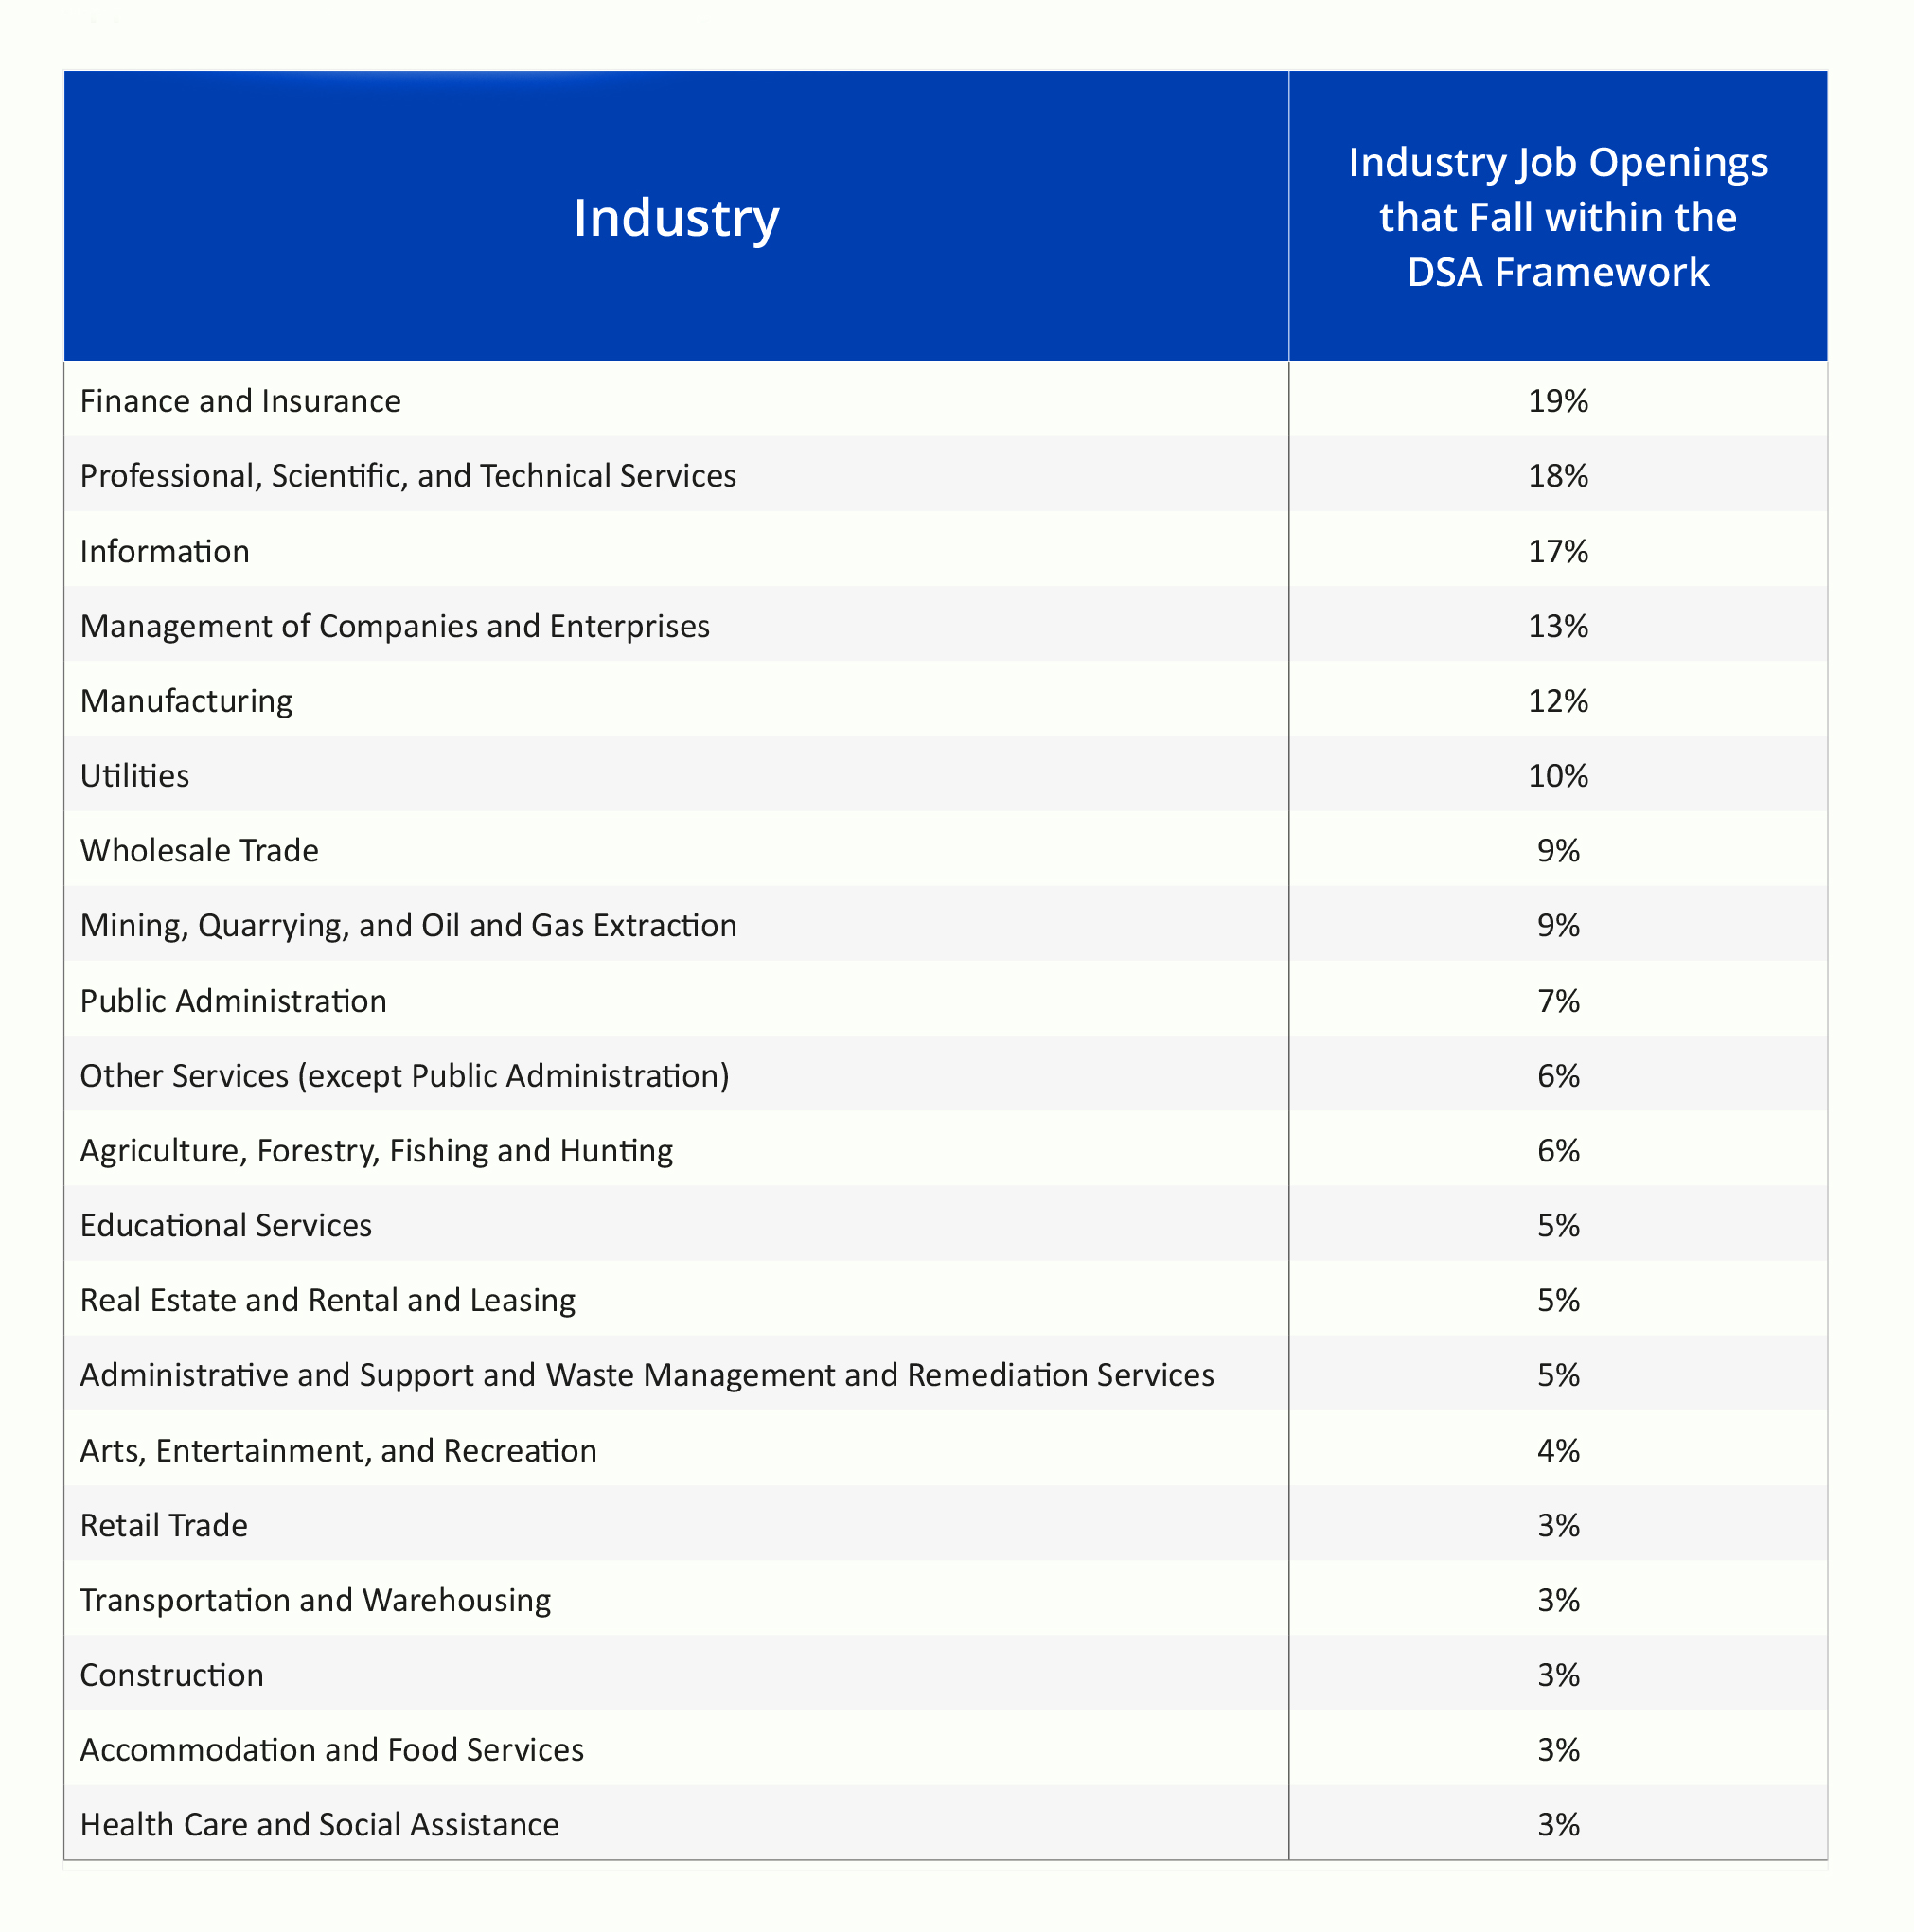 Demand for Data Science as per industry